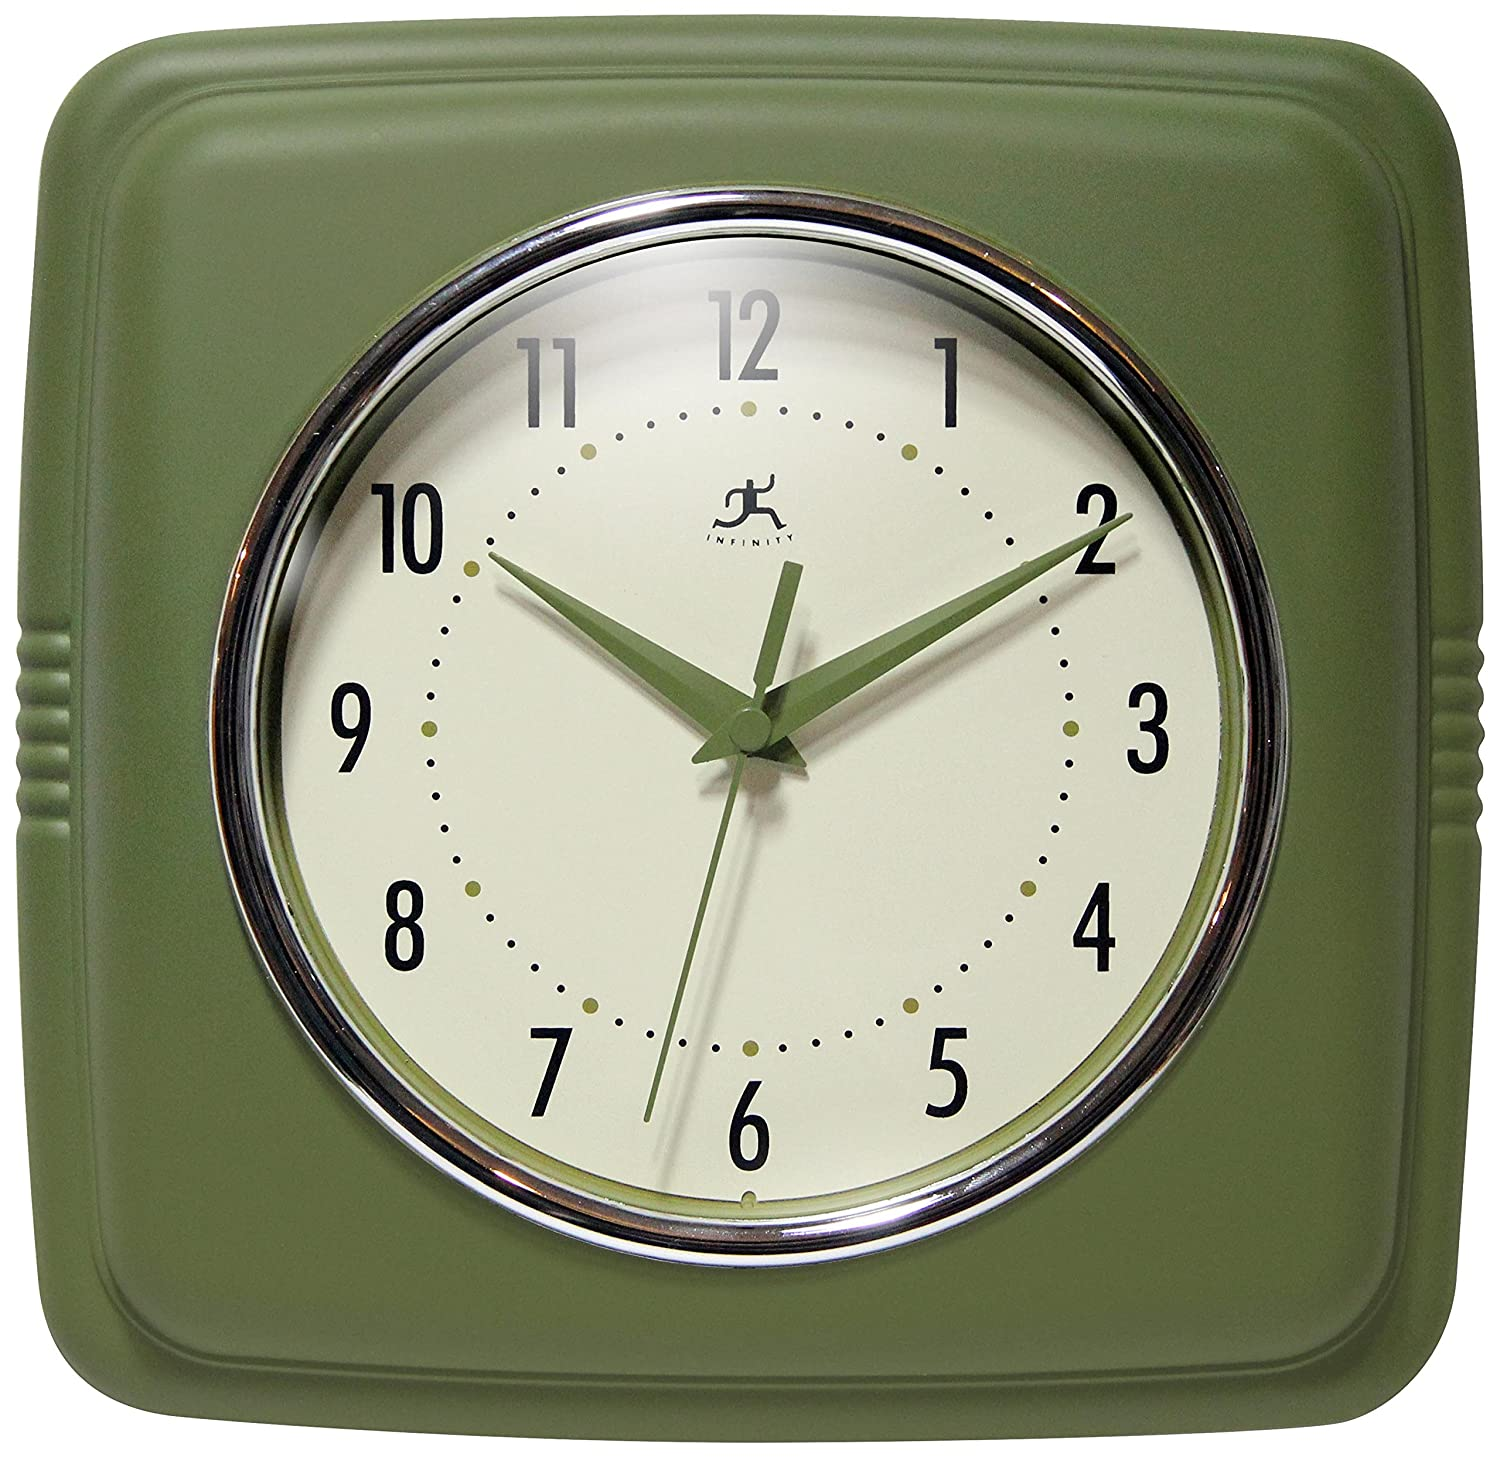 Infinity Instruments Square Retro 9.25 Wall Clock, Sage Green 13228SG-4103